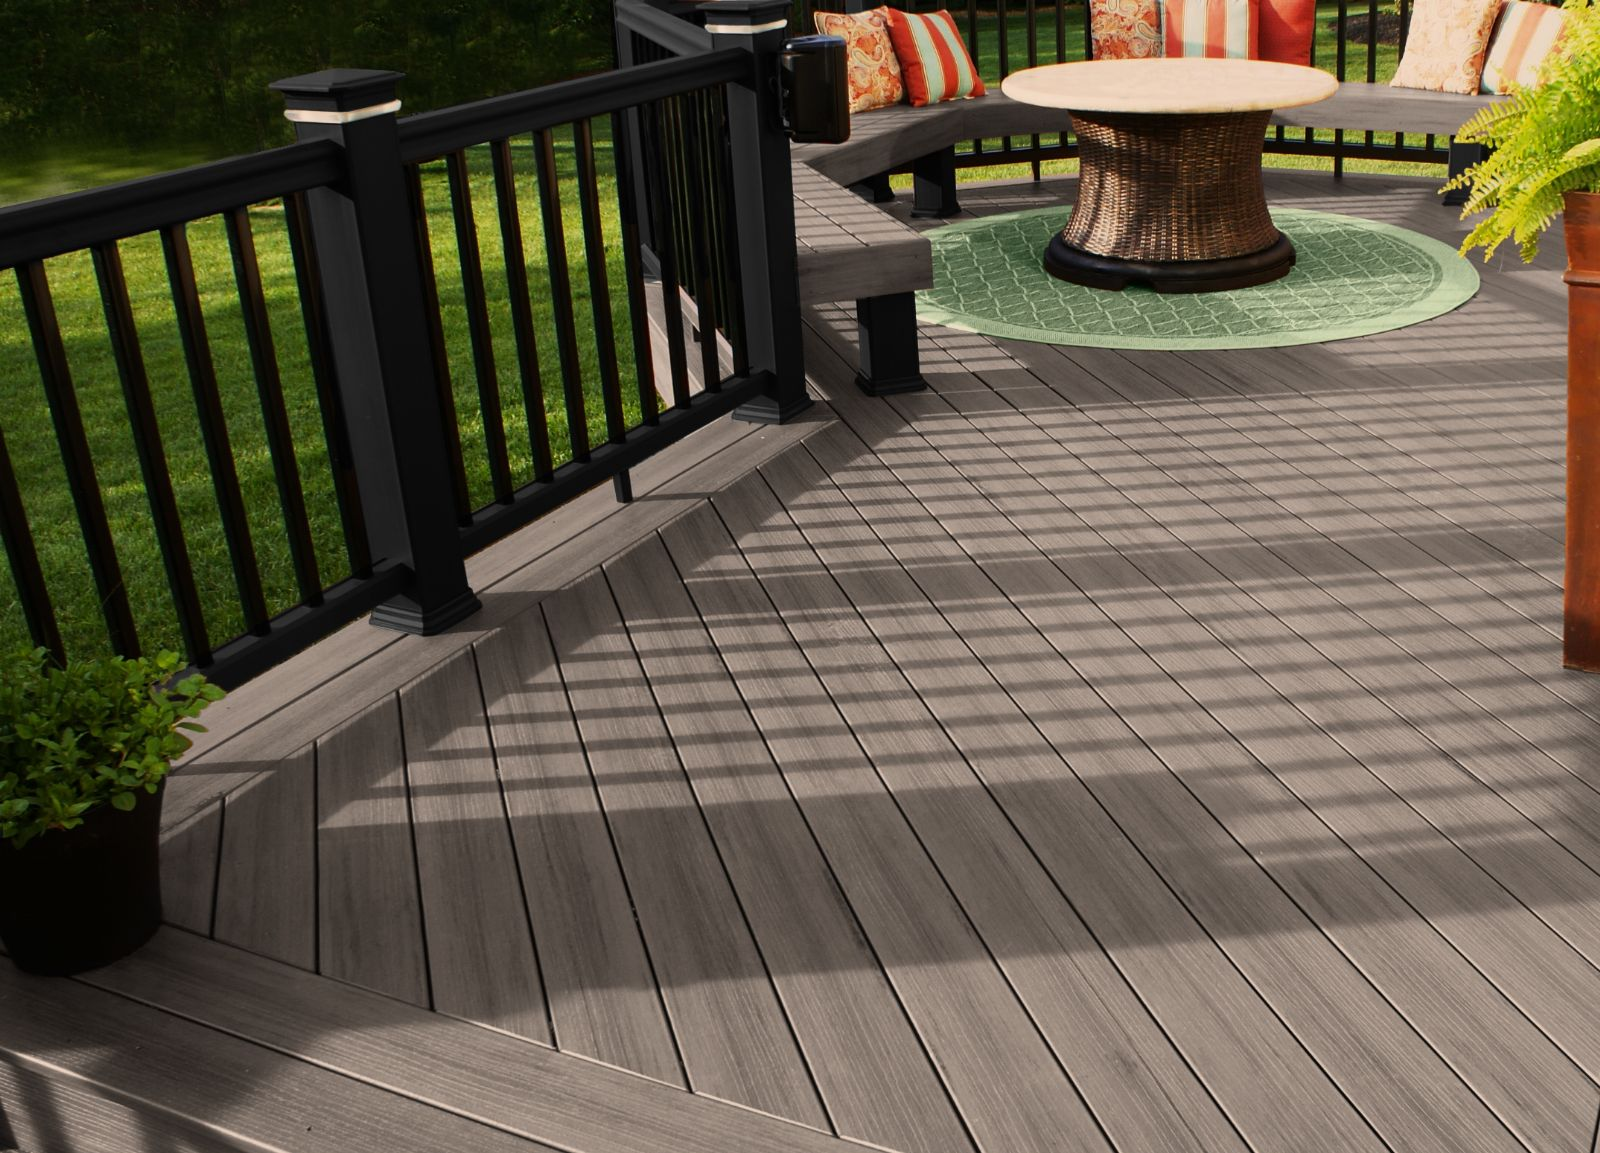 301 moved permanently Terrain decking